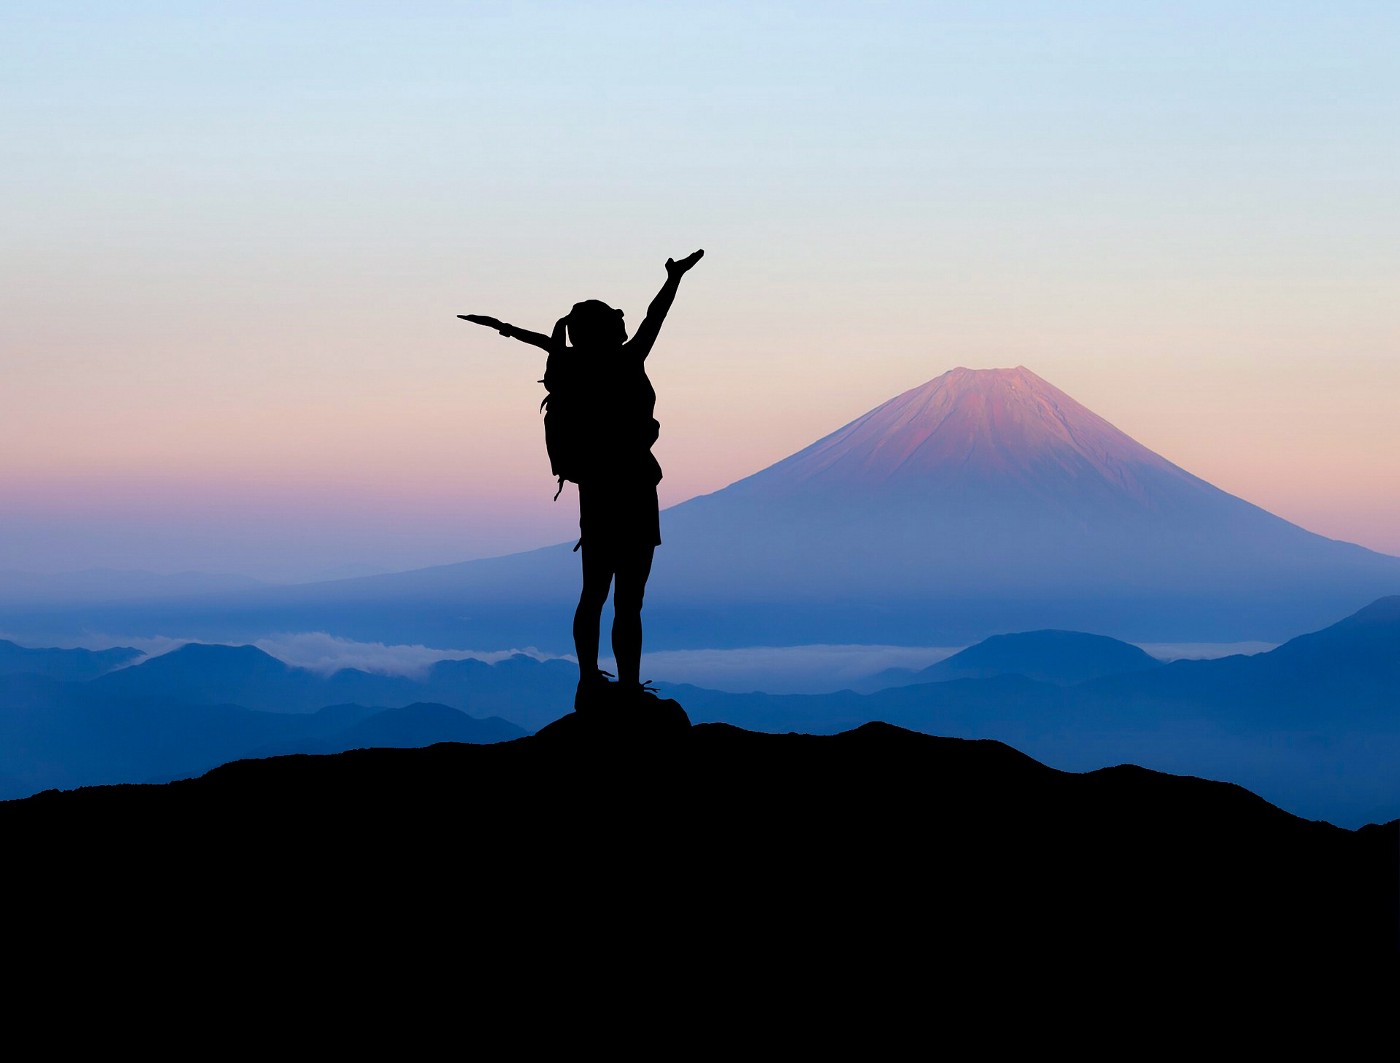 Woman on mounitain, view on another mountain, arms in the air